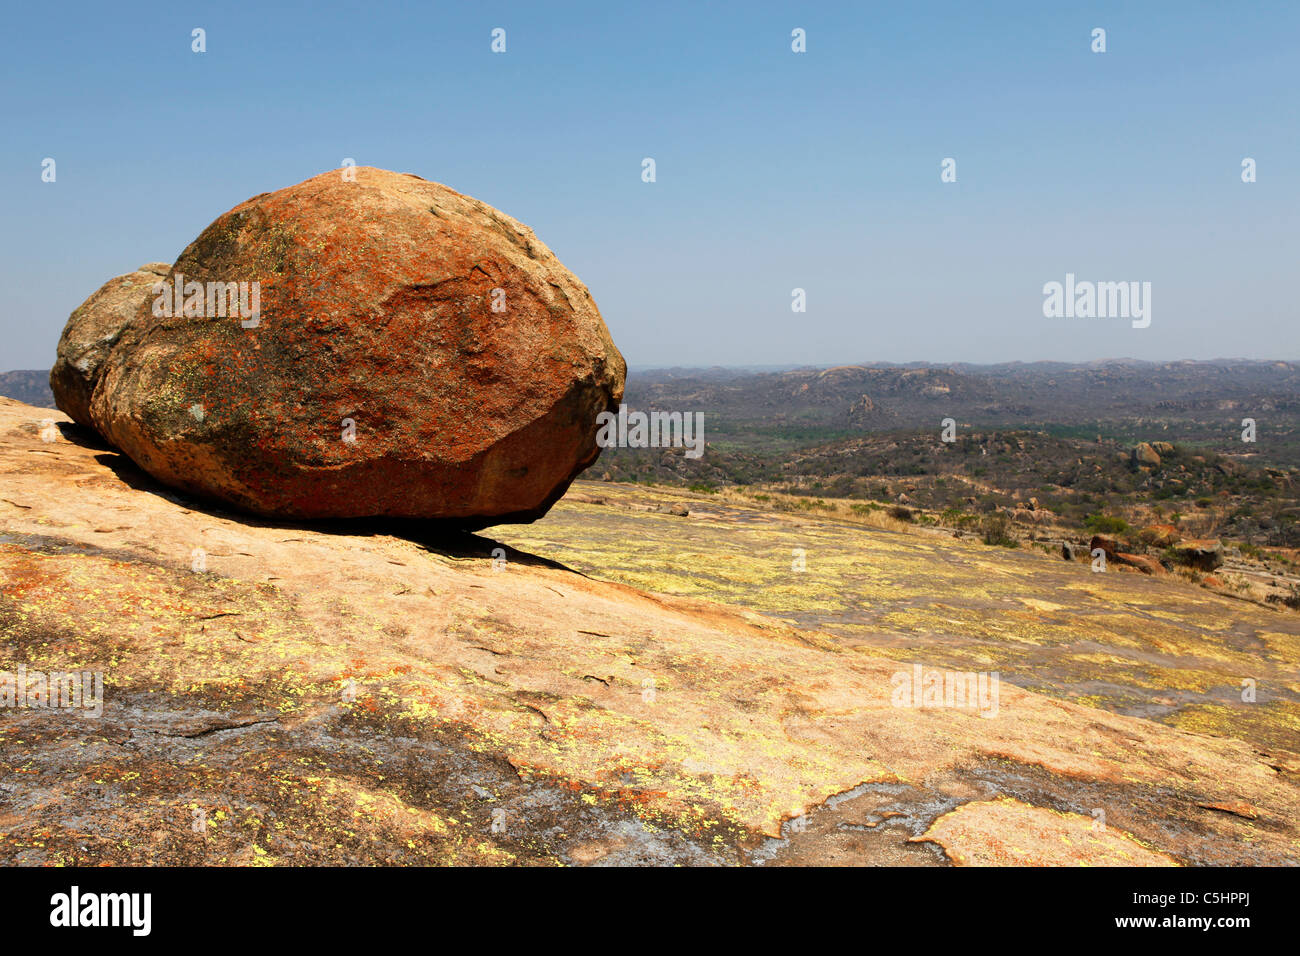 A boulder lies on a hillside in the Rhodes-Matopos National Park close to Bulawayo, Zimbabwe. - Stock Image